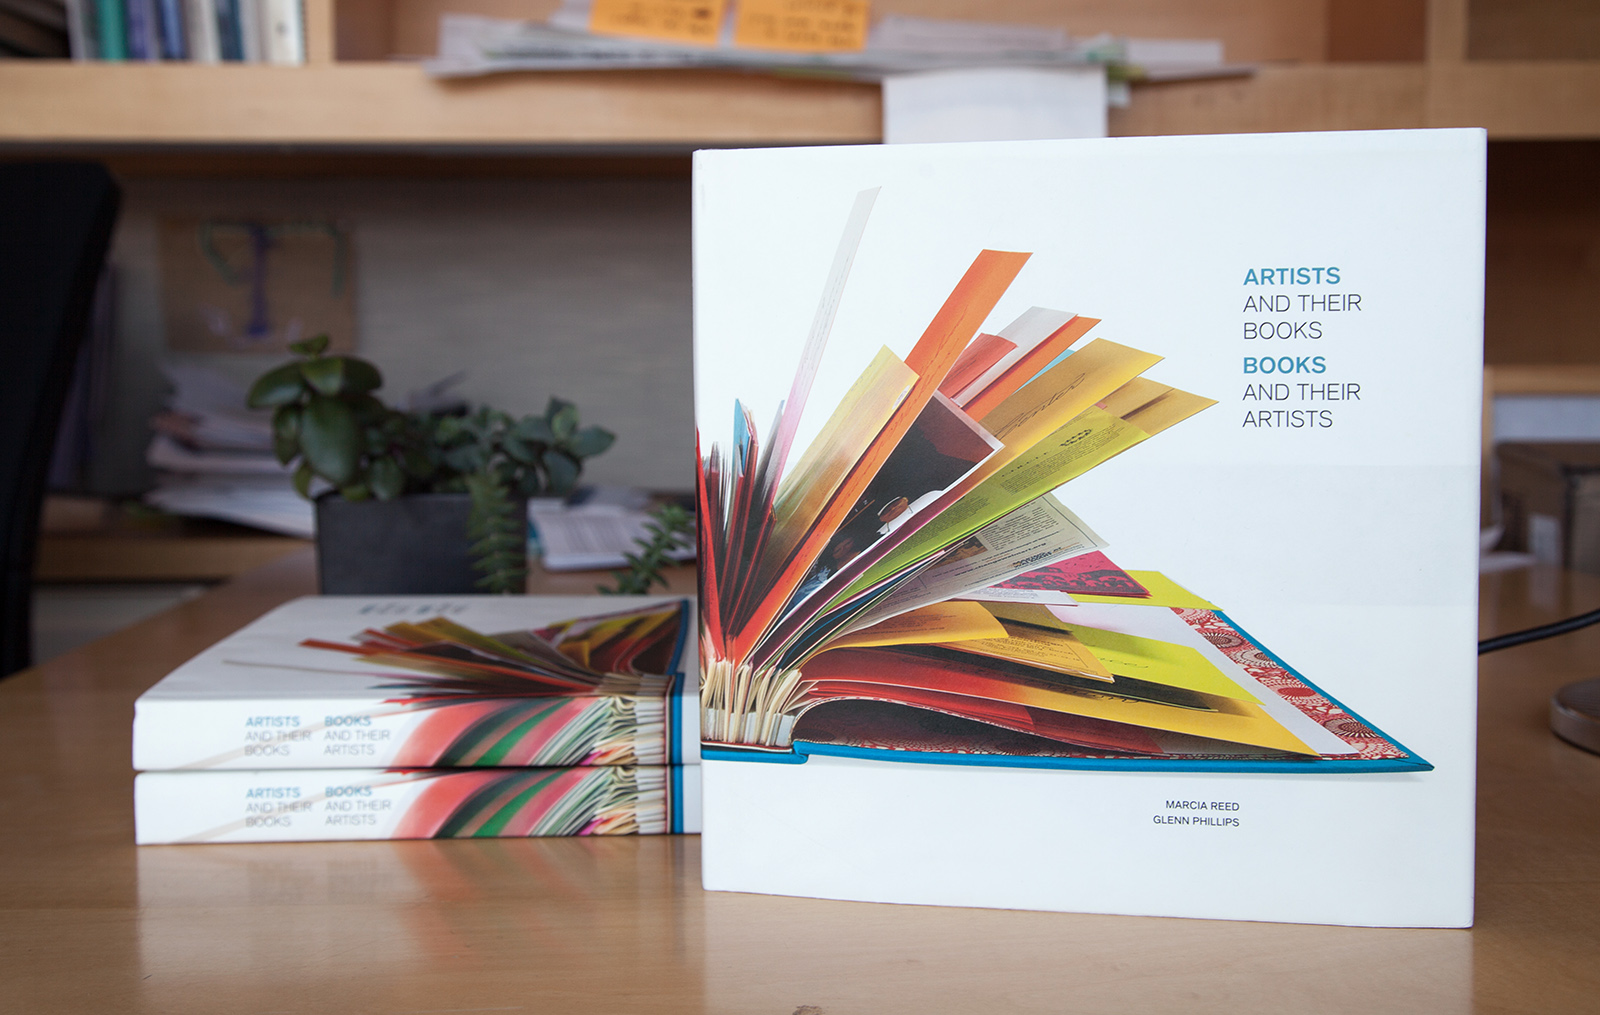 A stack of copies of the book Artists and Their Books sitting on a desk